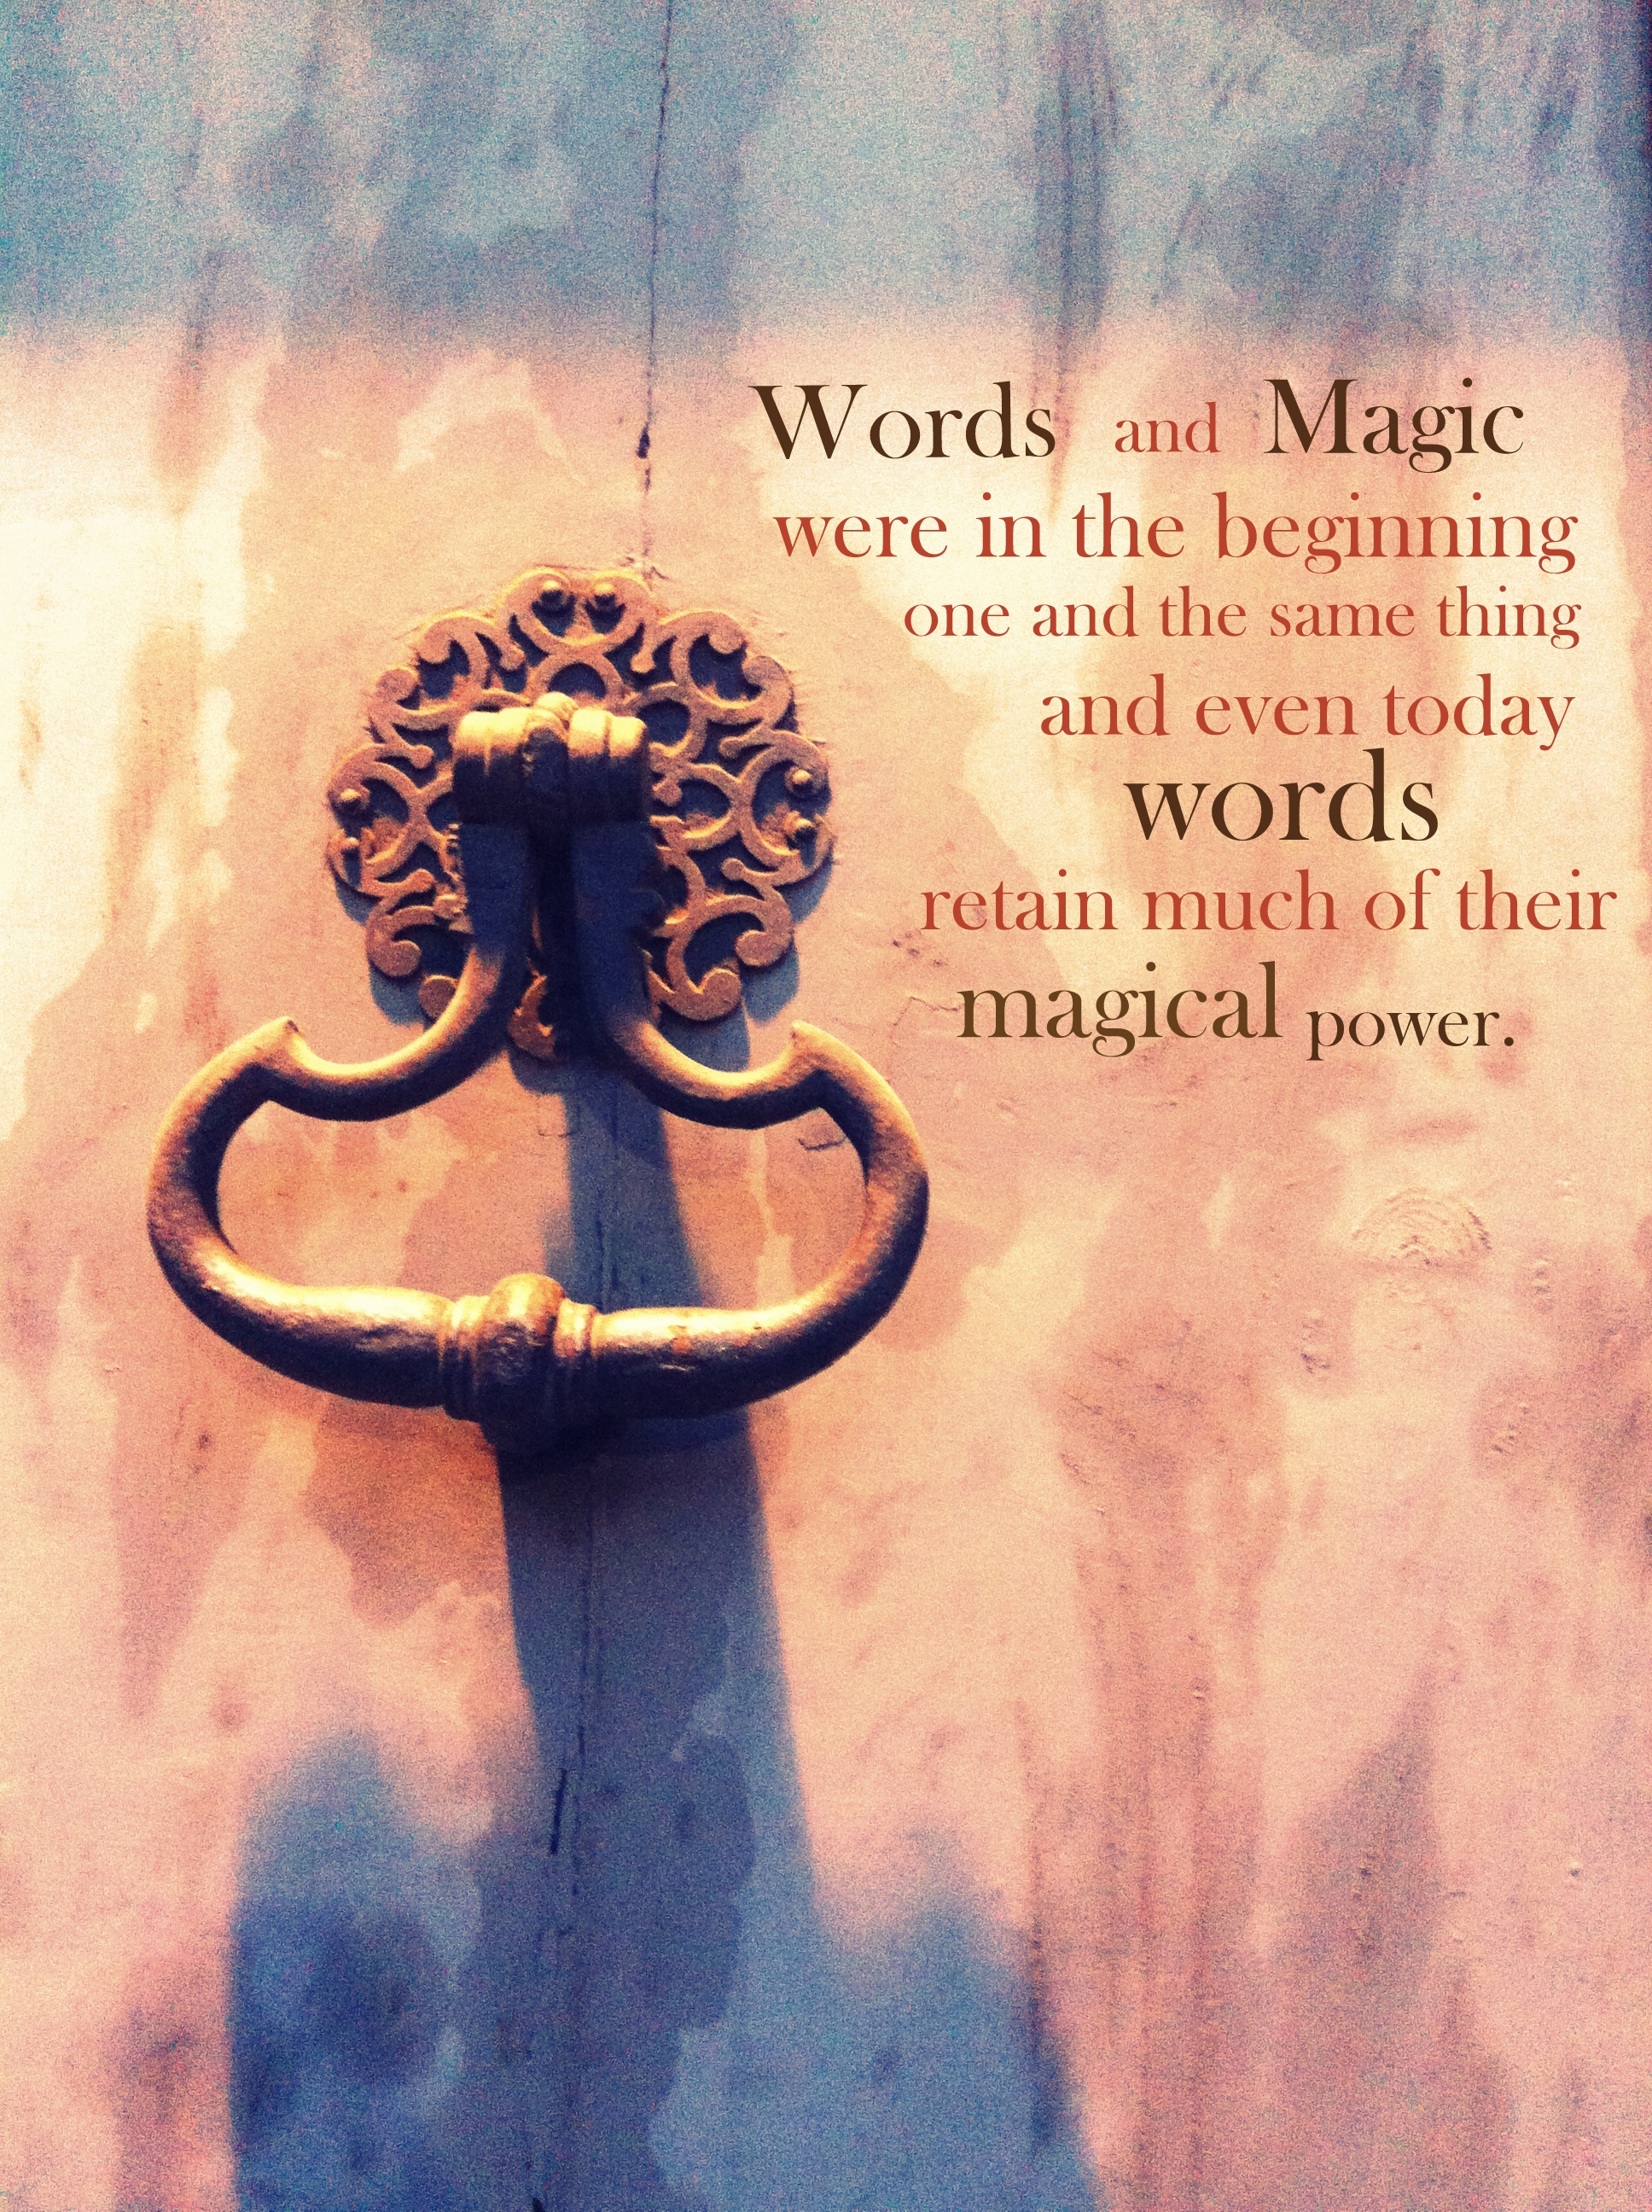 Magical quote #2